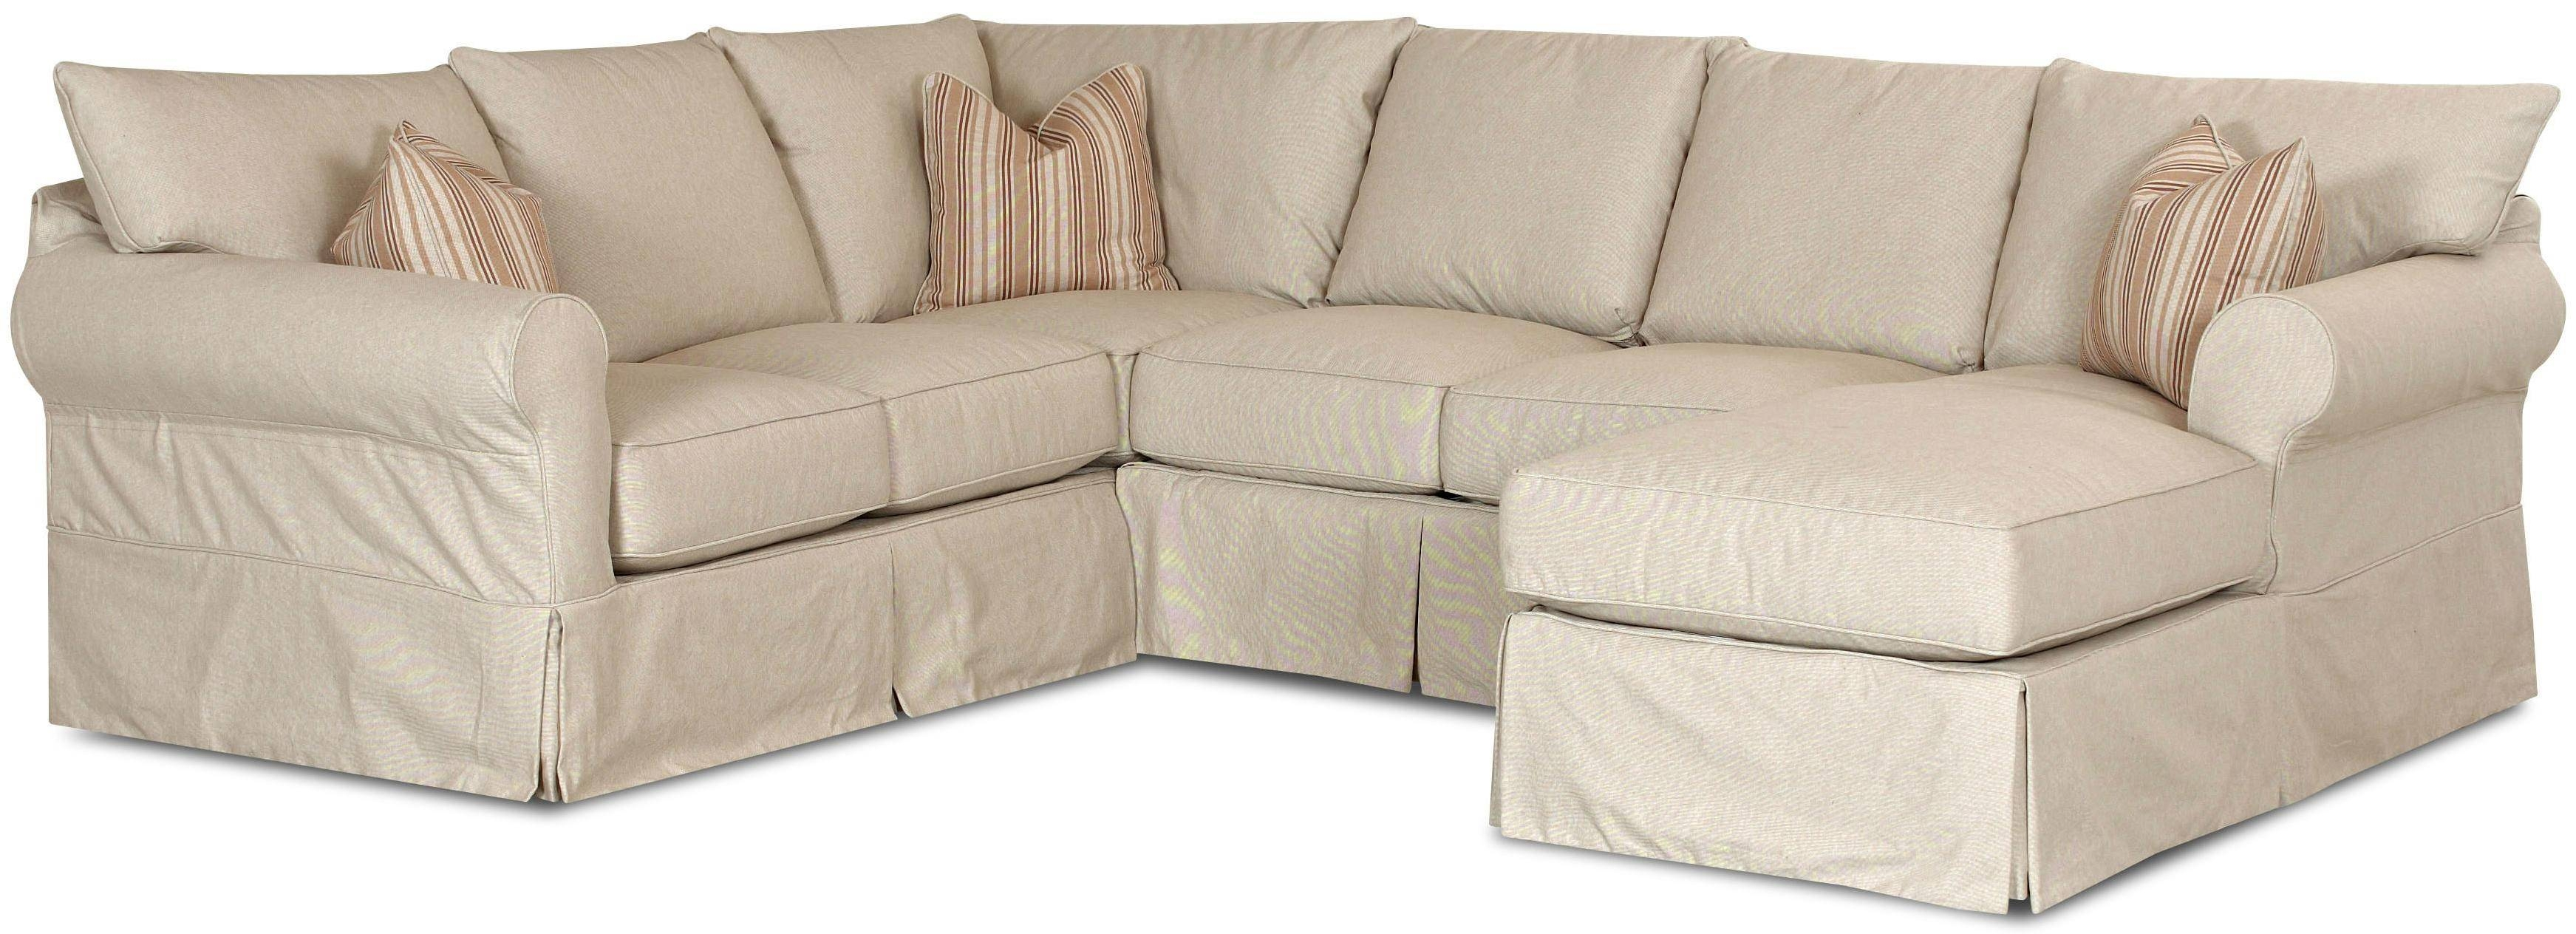 Inspirations: Interesting Furniture Sectional Sofa Slipcovers For for Sectional Sofa Covers (Image 10 of 25)